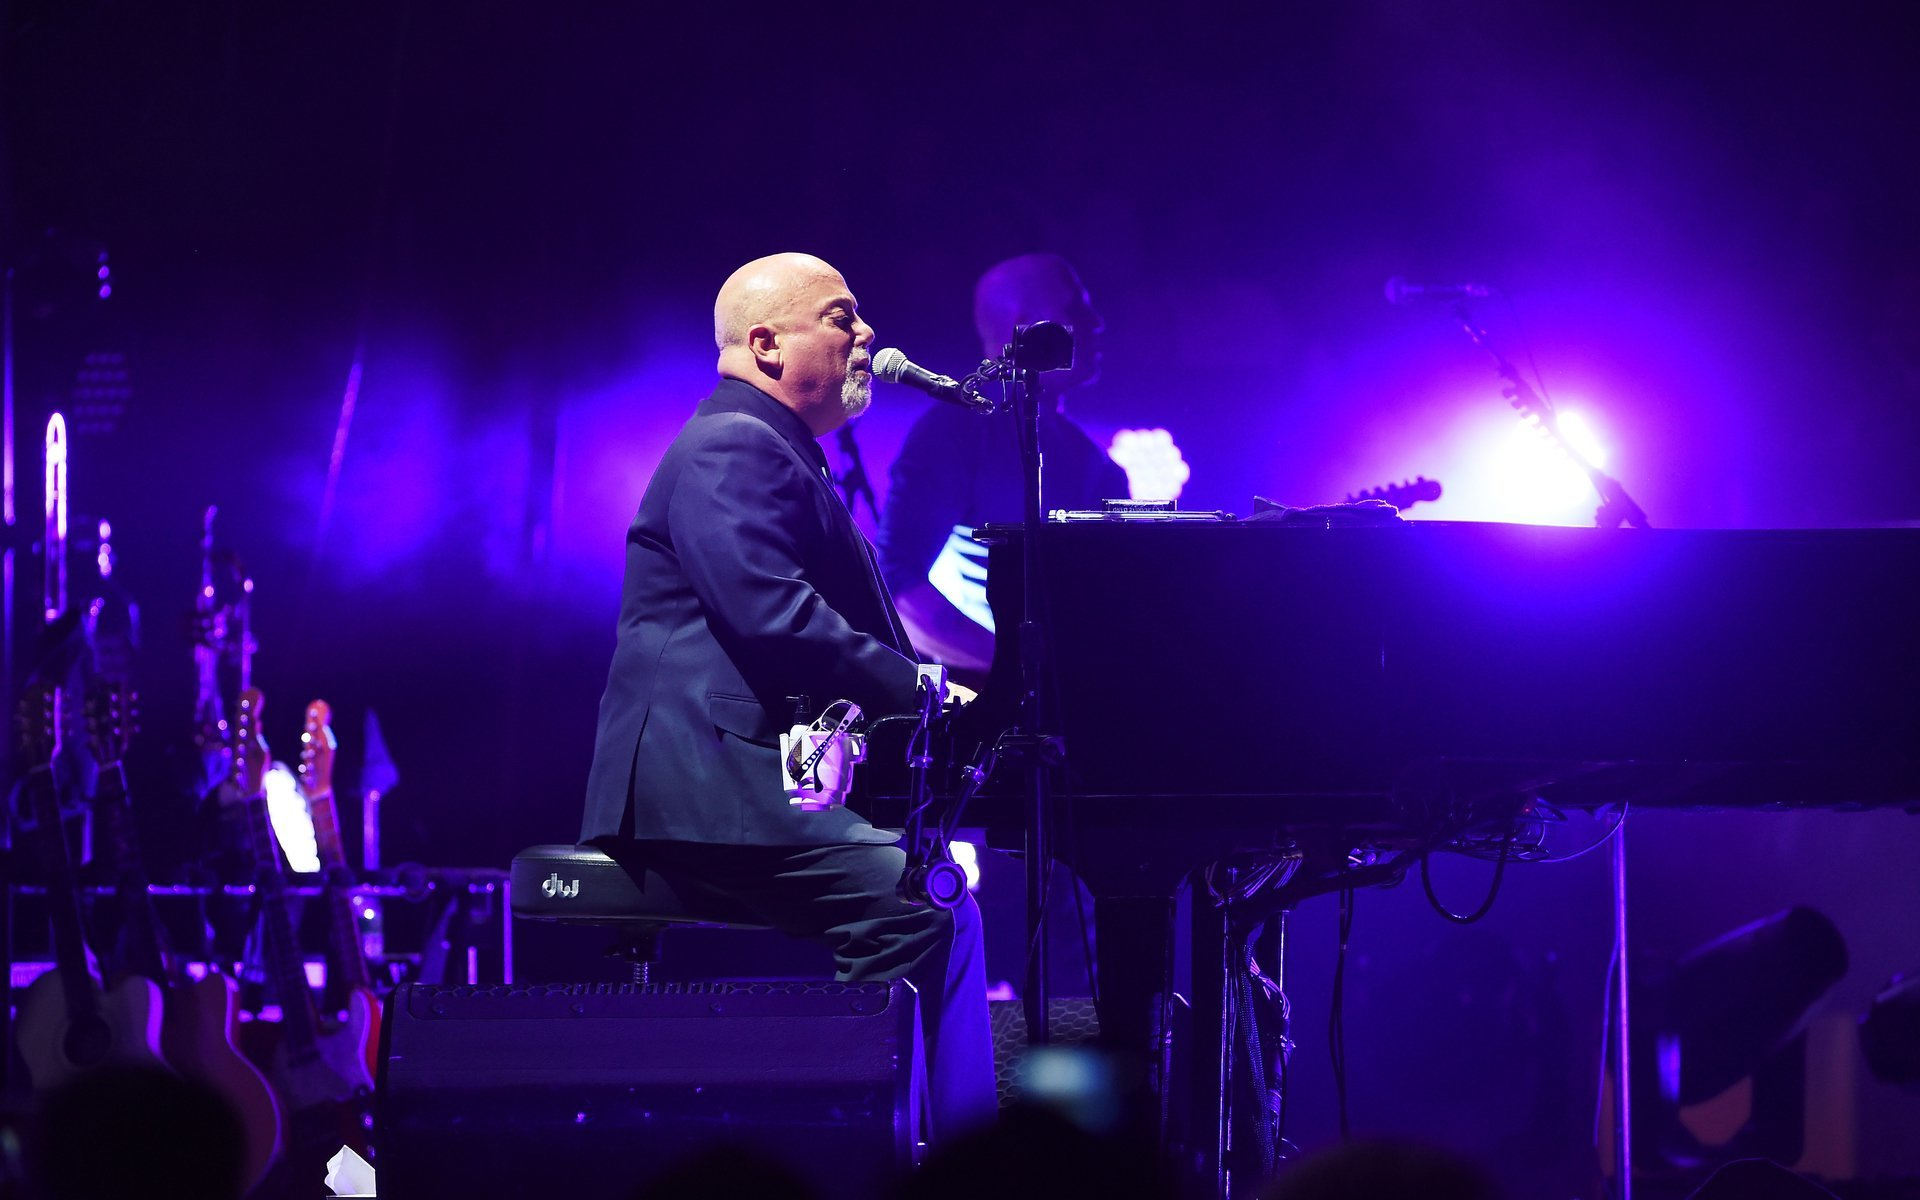 12 Tickets in Luxury VIP Suite to See Billy Joel at     - Charitybuzz